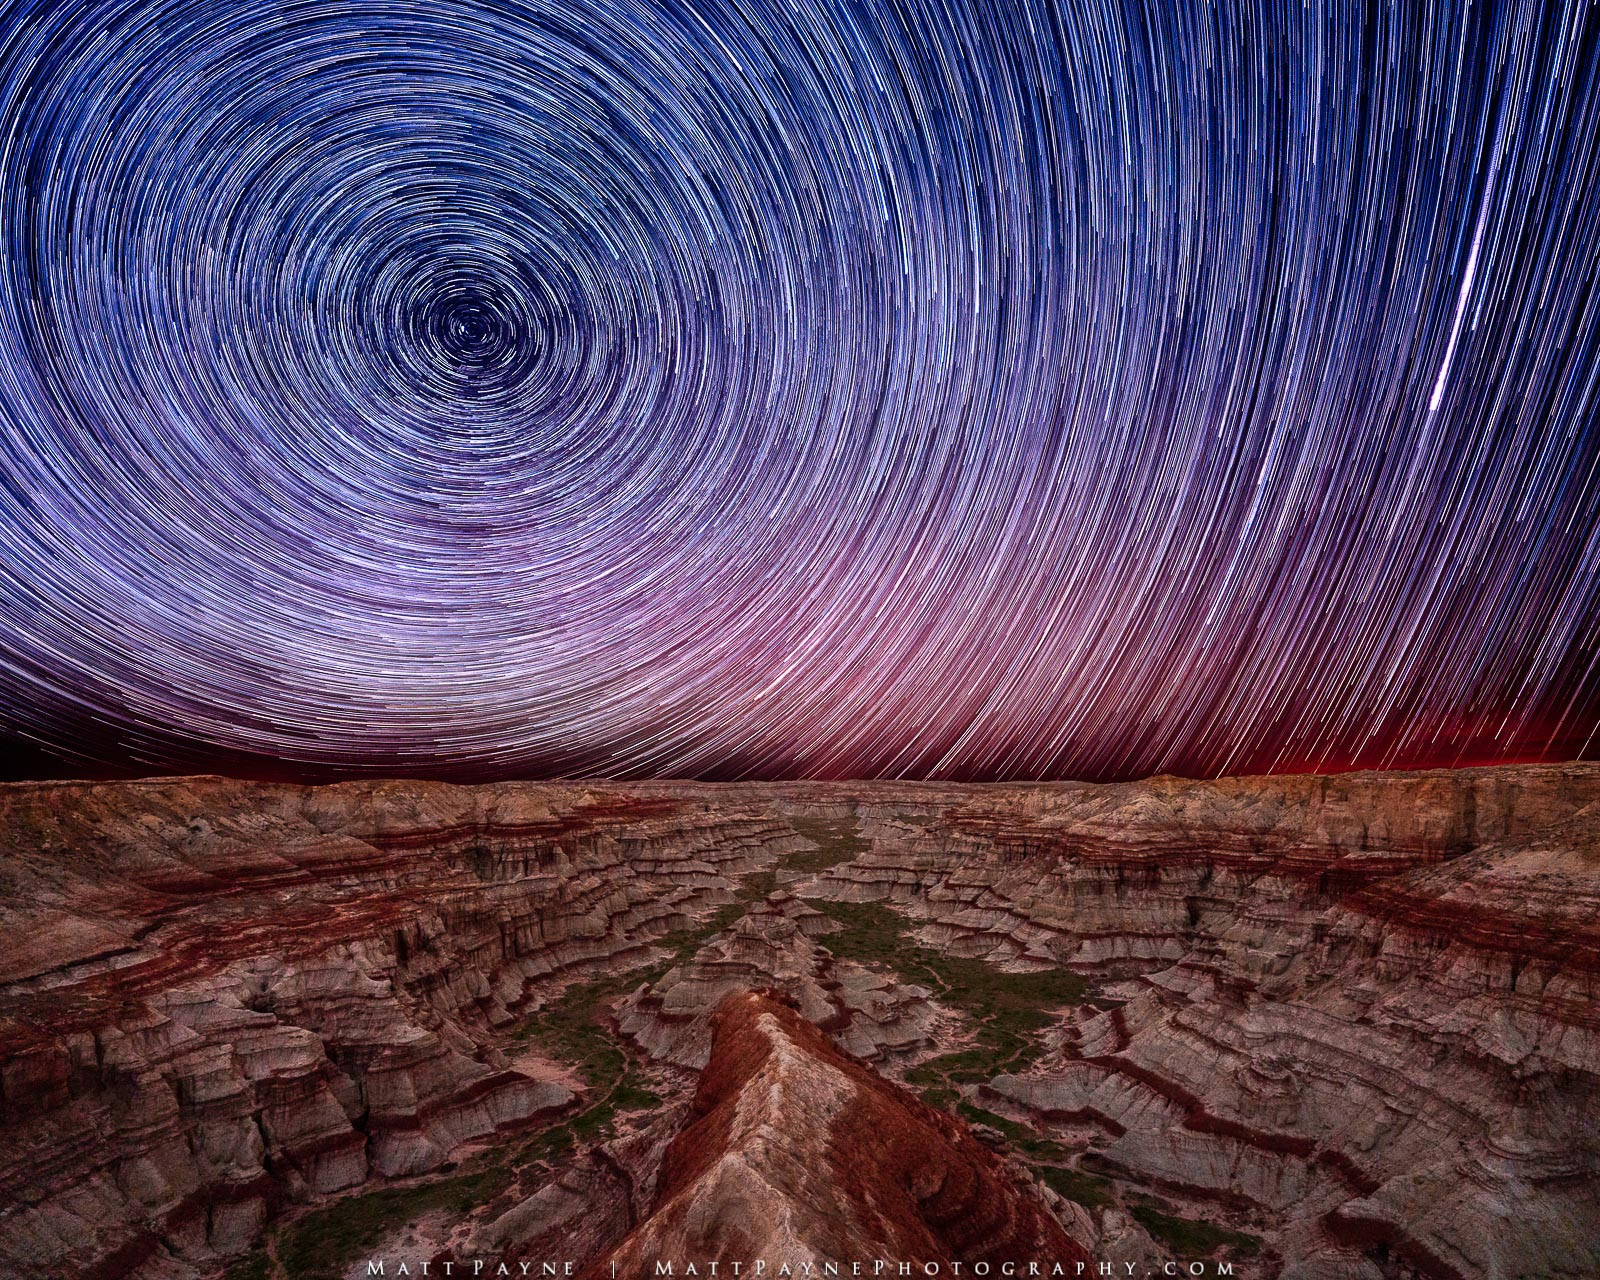 Night, Nightscape, North Star, Polaris, Star Trails, canyon, Desert Southwest, Landscape Photography, photo